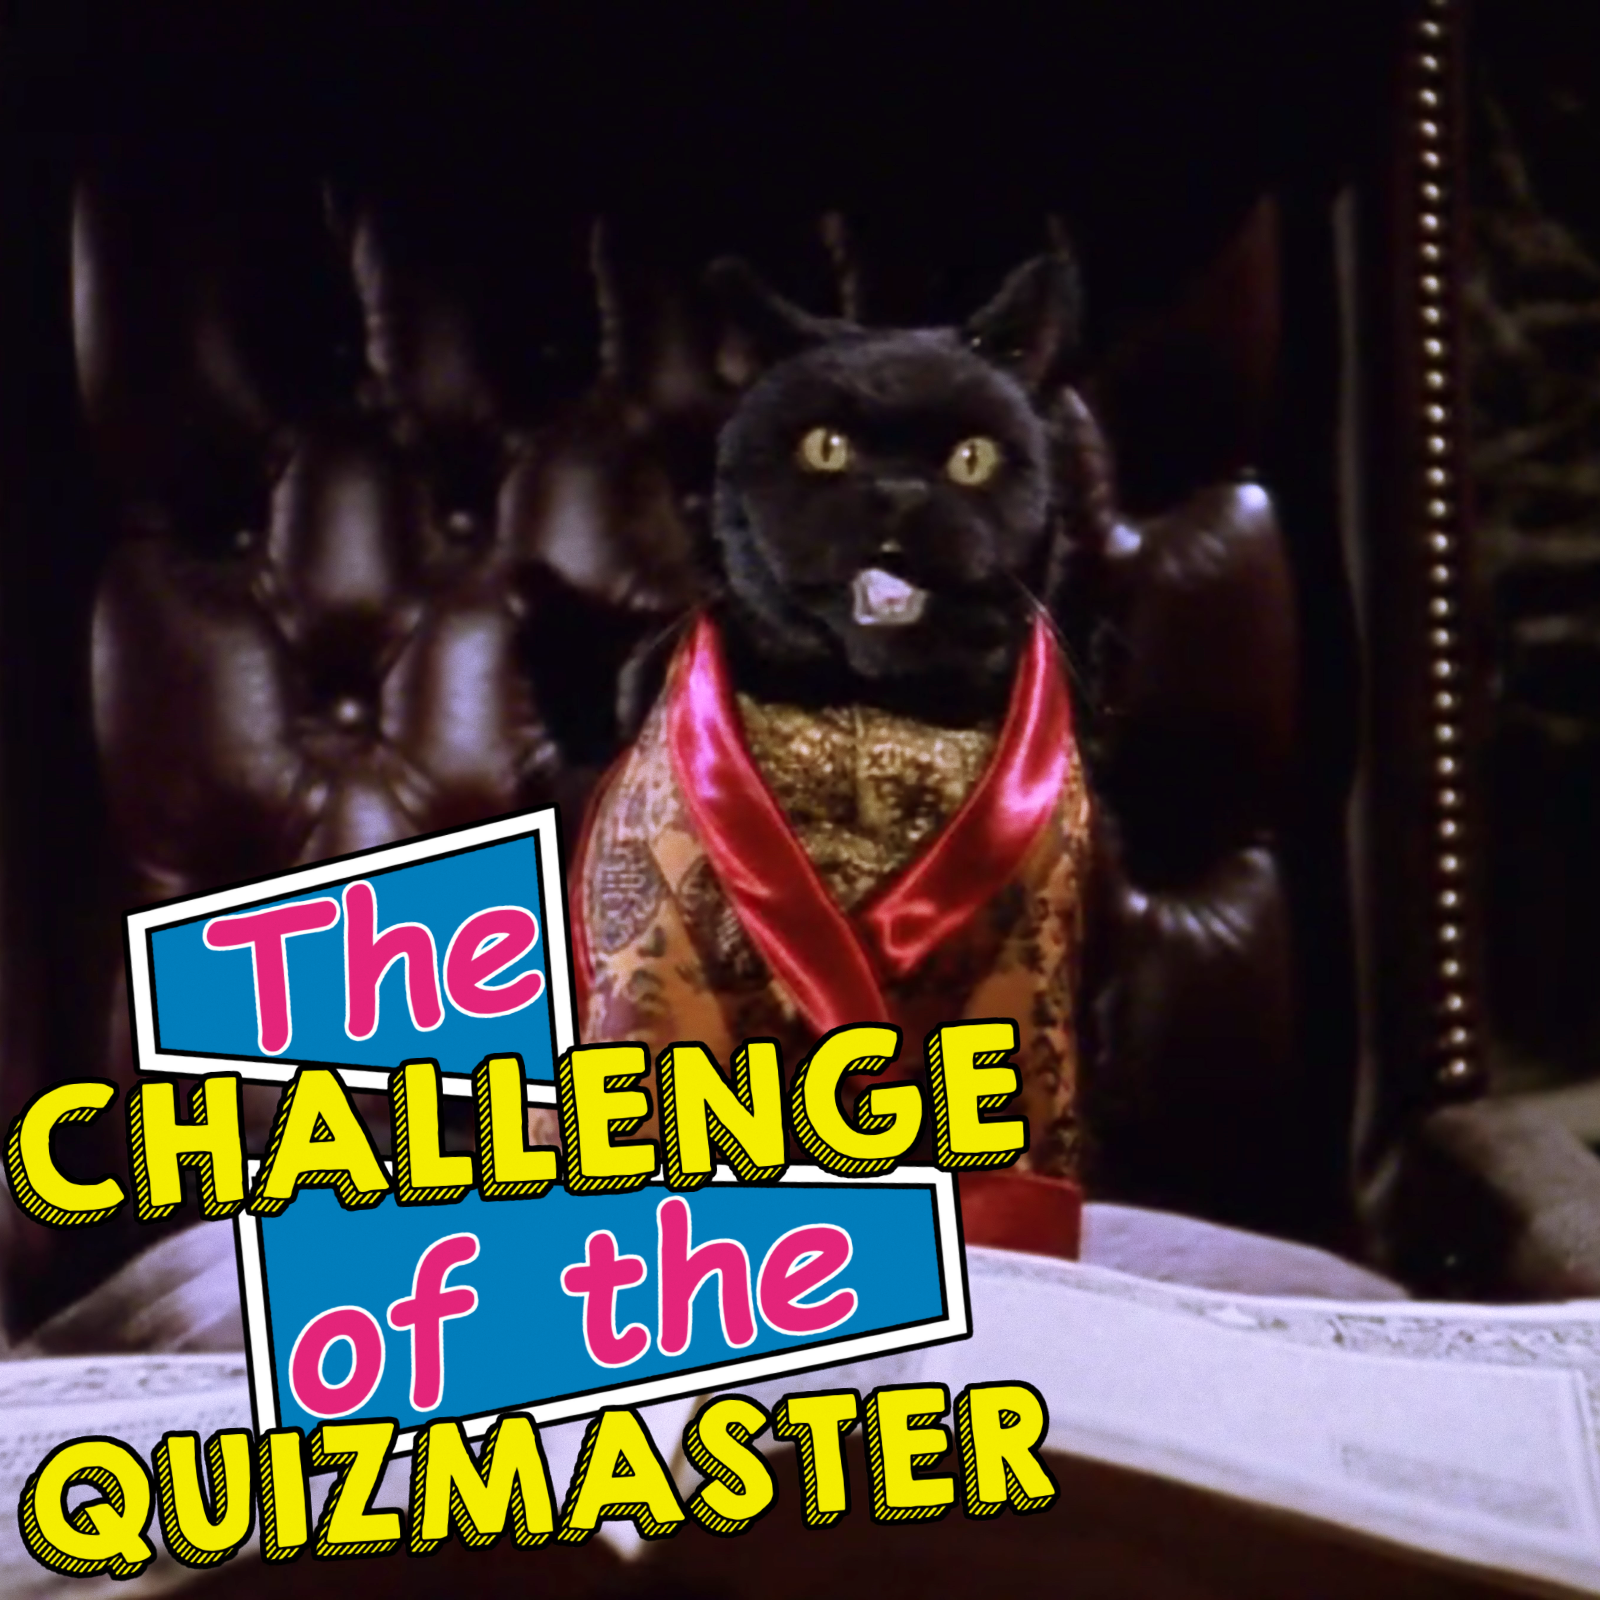 What Percent Salem Are You? - The Challenge Of The Quizmaster